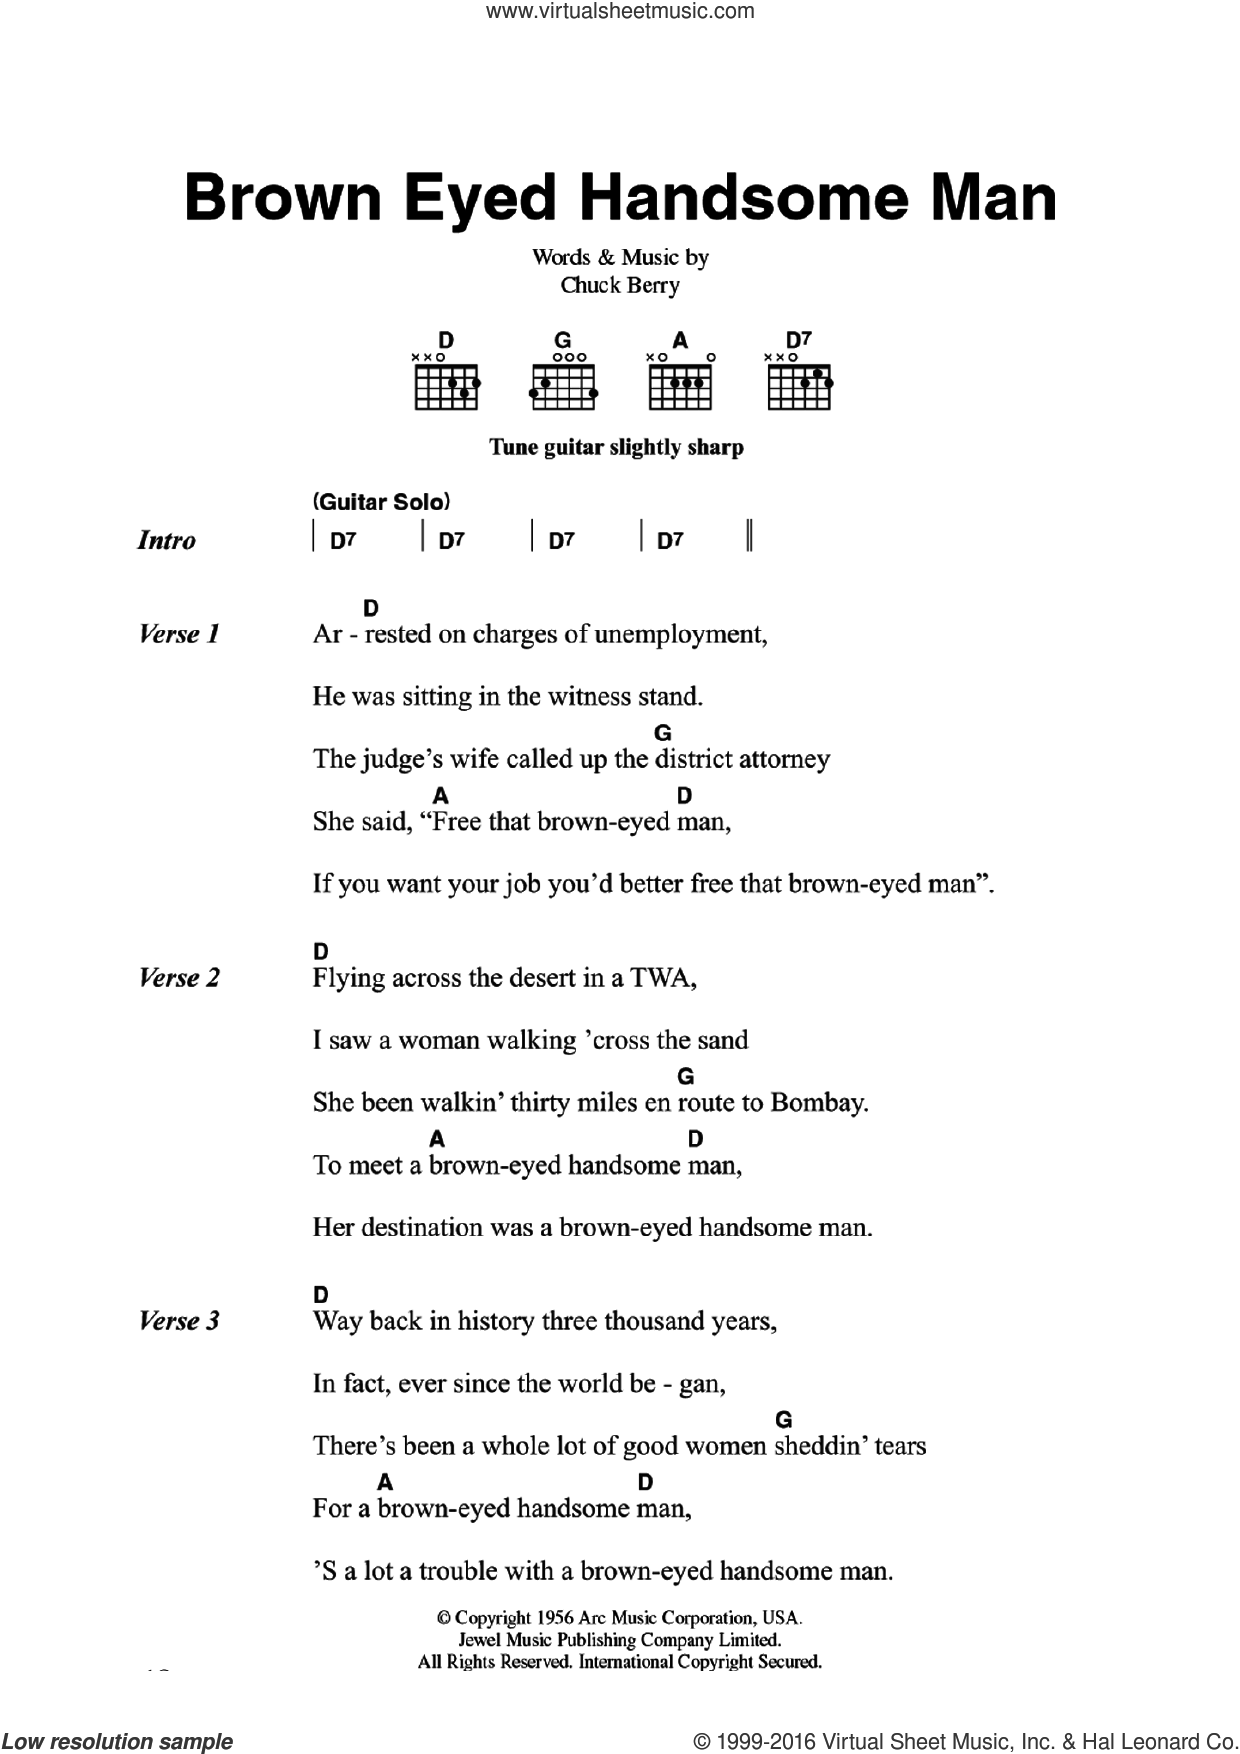 Brown Eyed Handsome Man sheet music for guitar (chords) by Chuck Berry, intermediate guitar (chords). Score Image Preview.